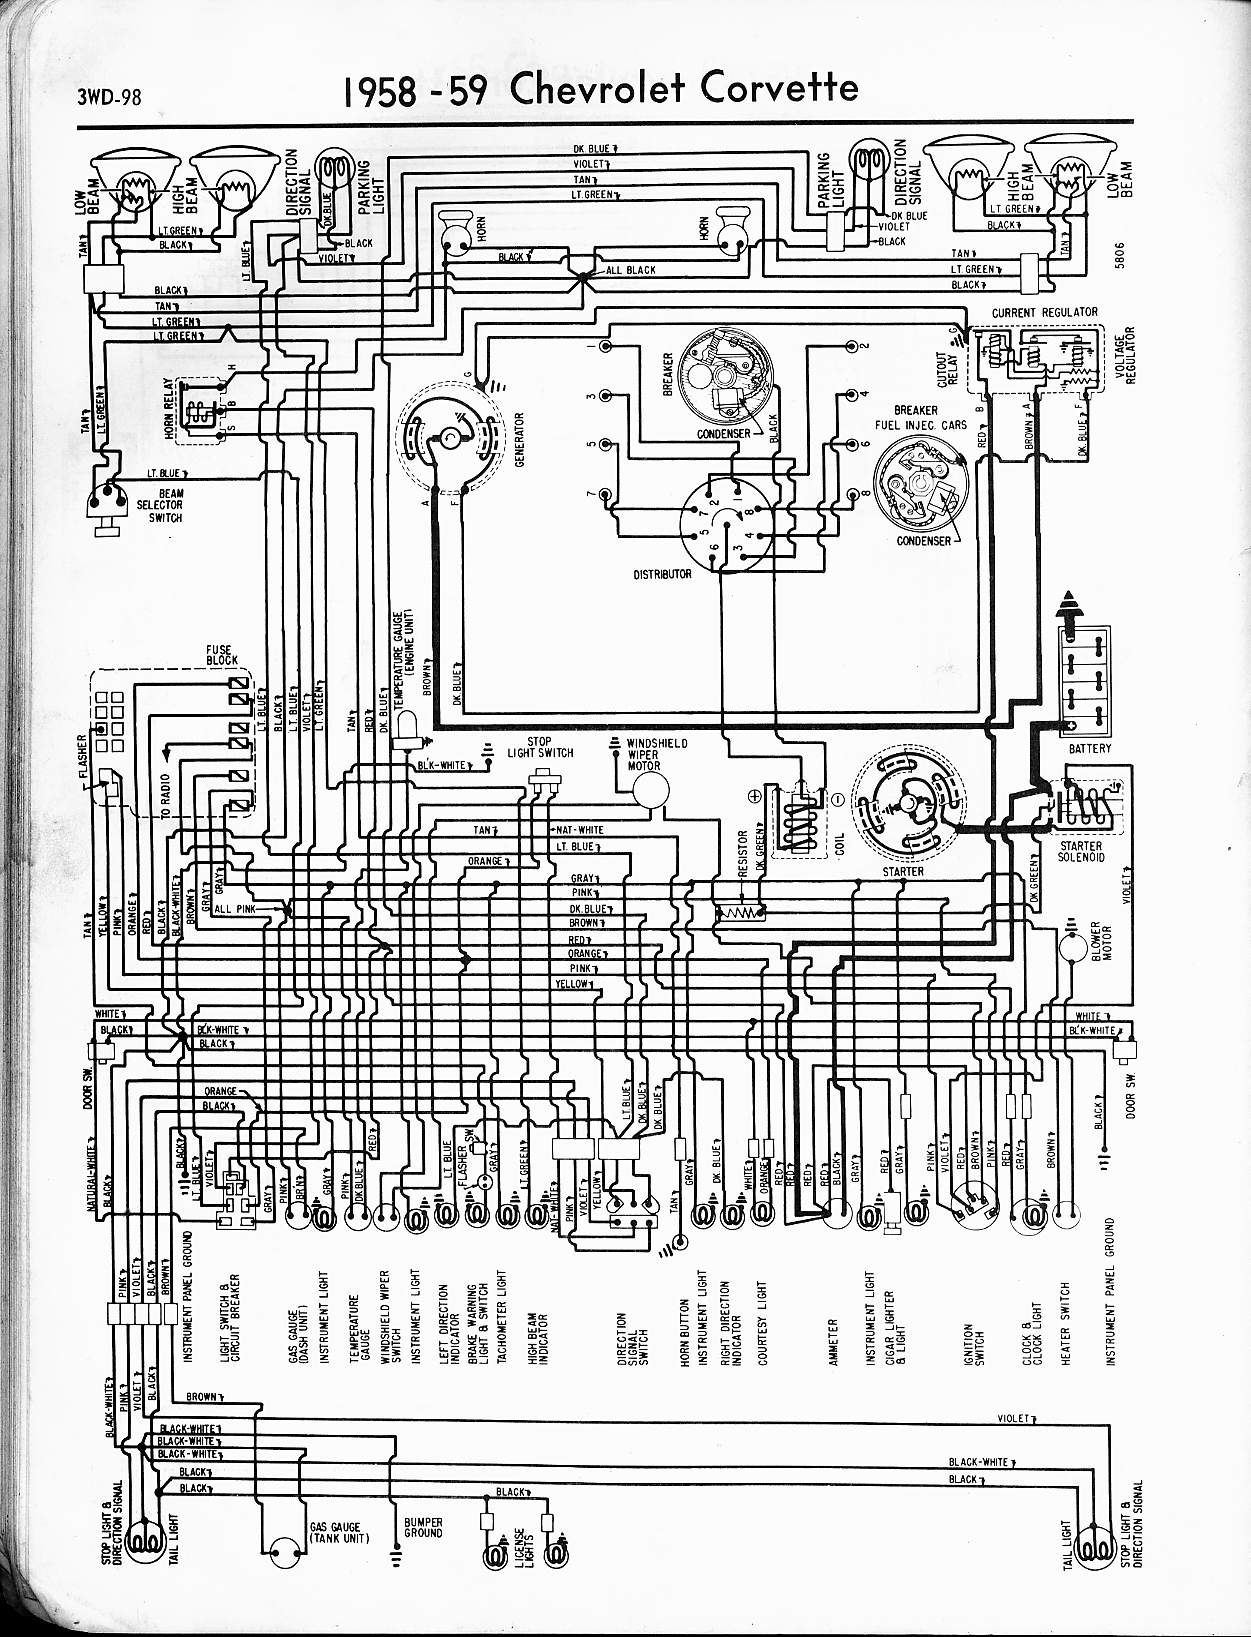 MWireChev58_3WD 098 corvette wiring diagram corvette parts diagram \u2022 wiring diagrams 65 Chevy Truck Wiring Diagram at soozxer.org